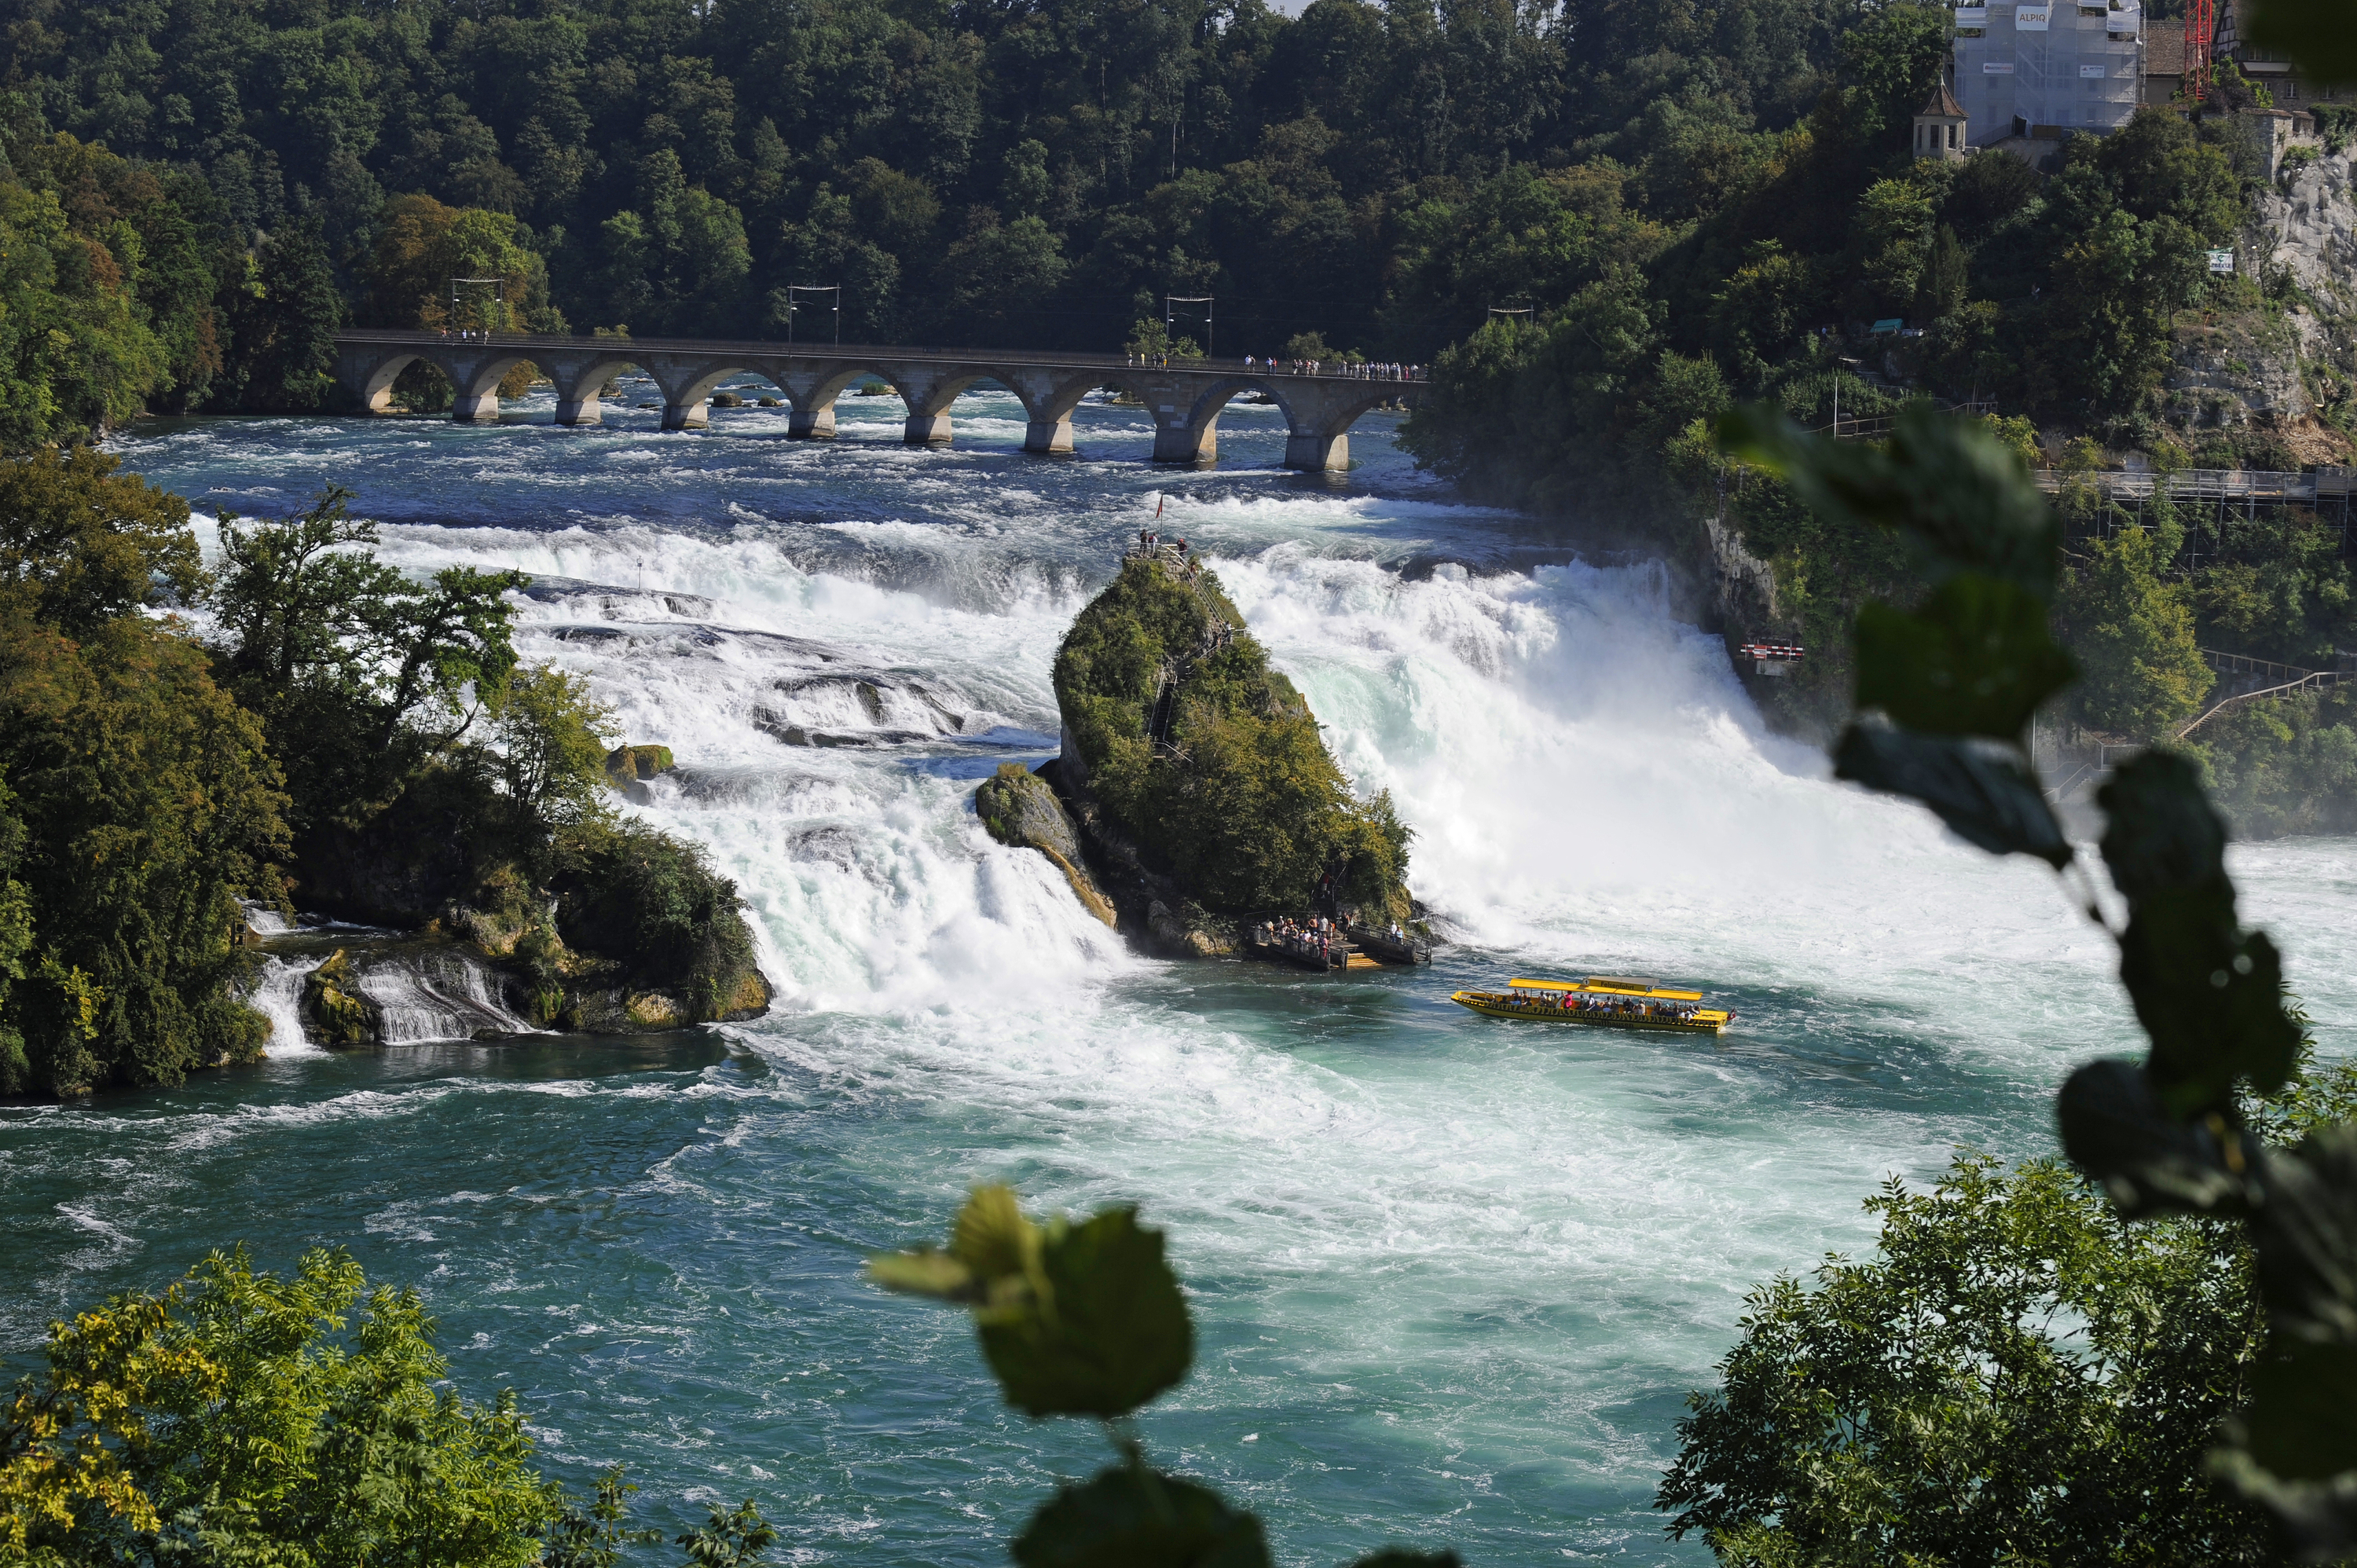 Ride into Europe's biggest waterfall